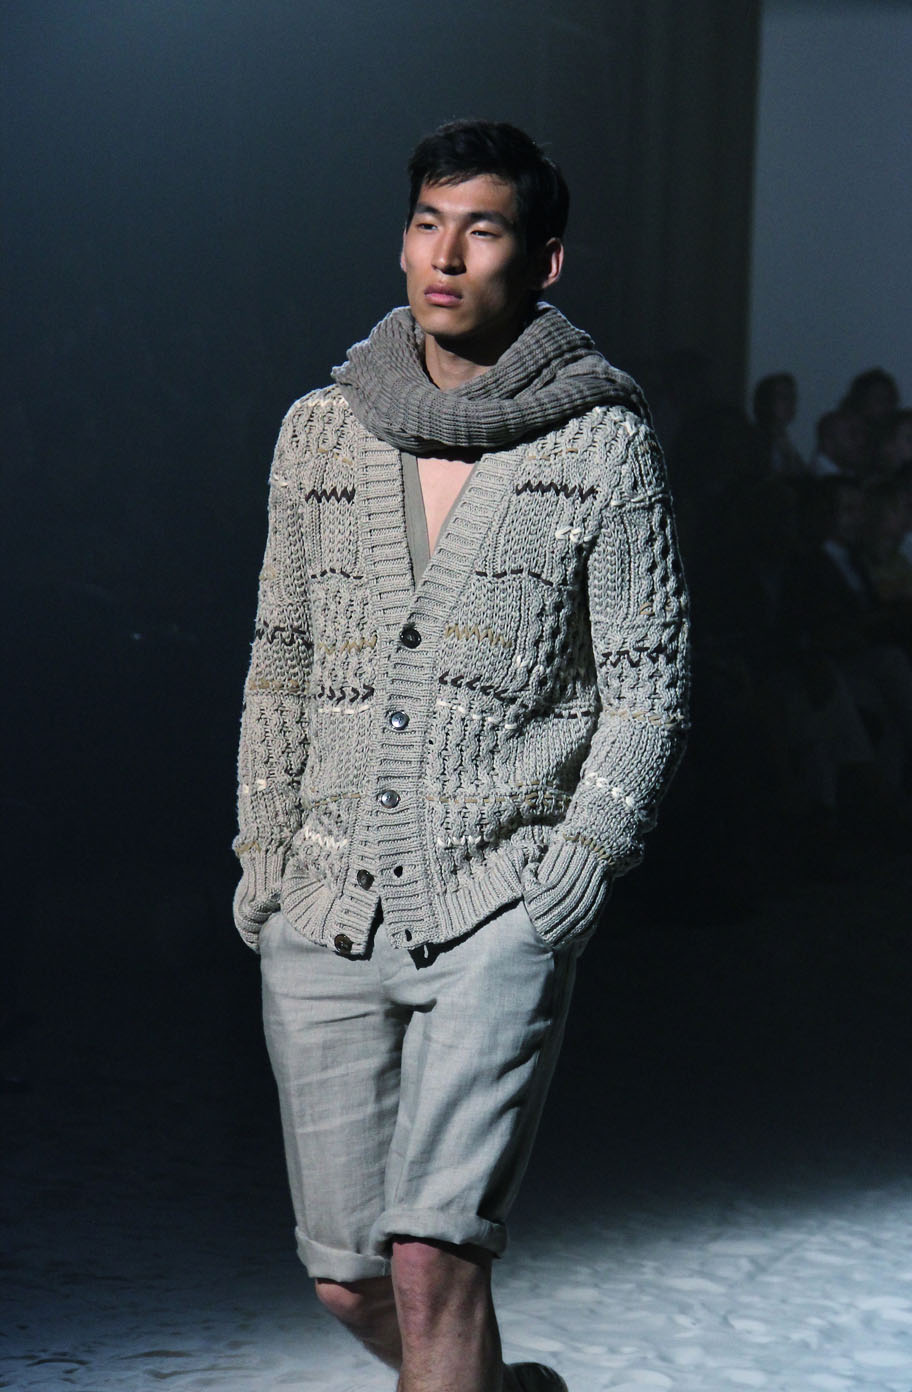 corneliani-spring-summer-2012-men-collection-milano-fashion-week-2012-corneliani-primavera-estate-fashion-show-catwalk